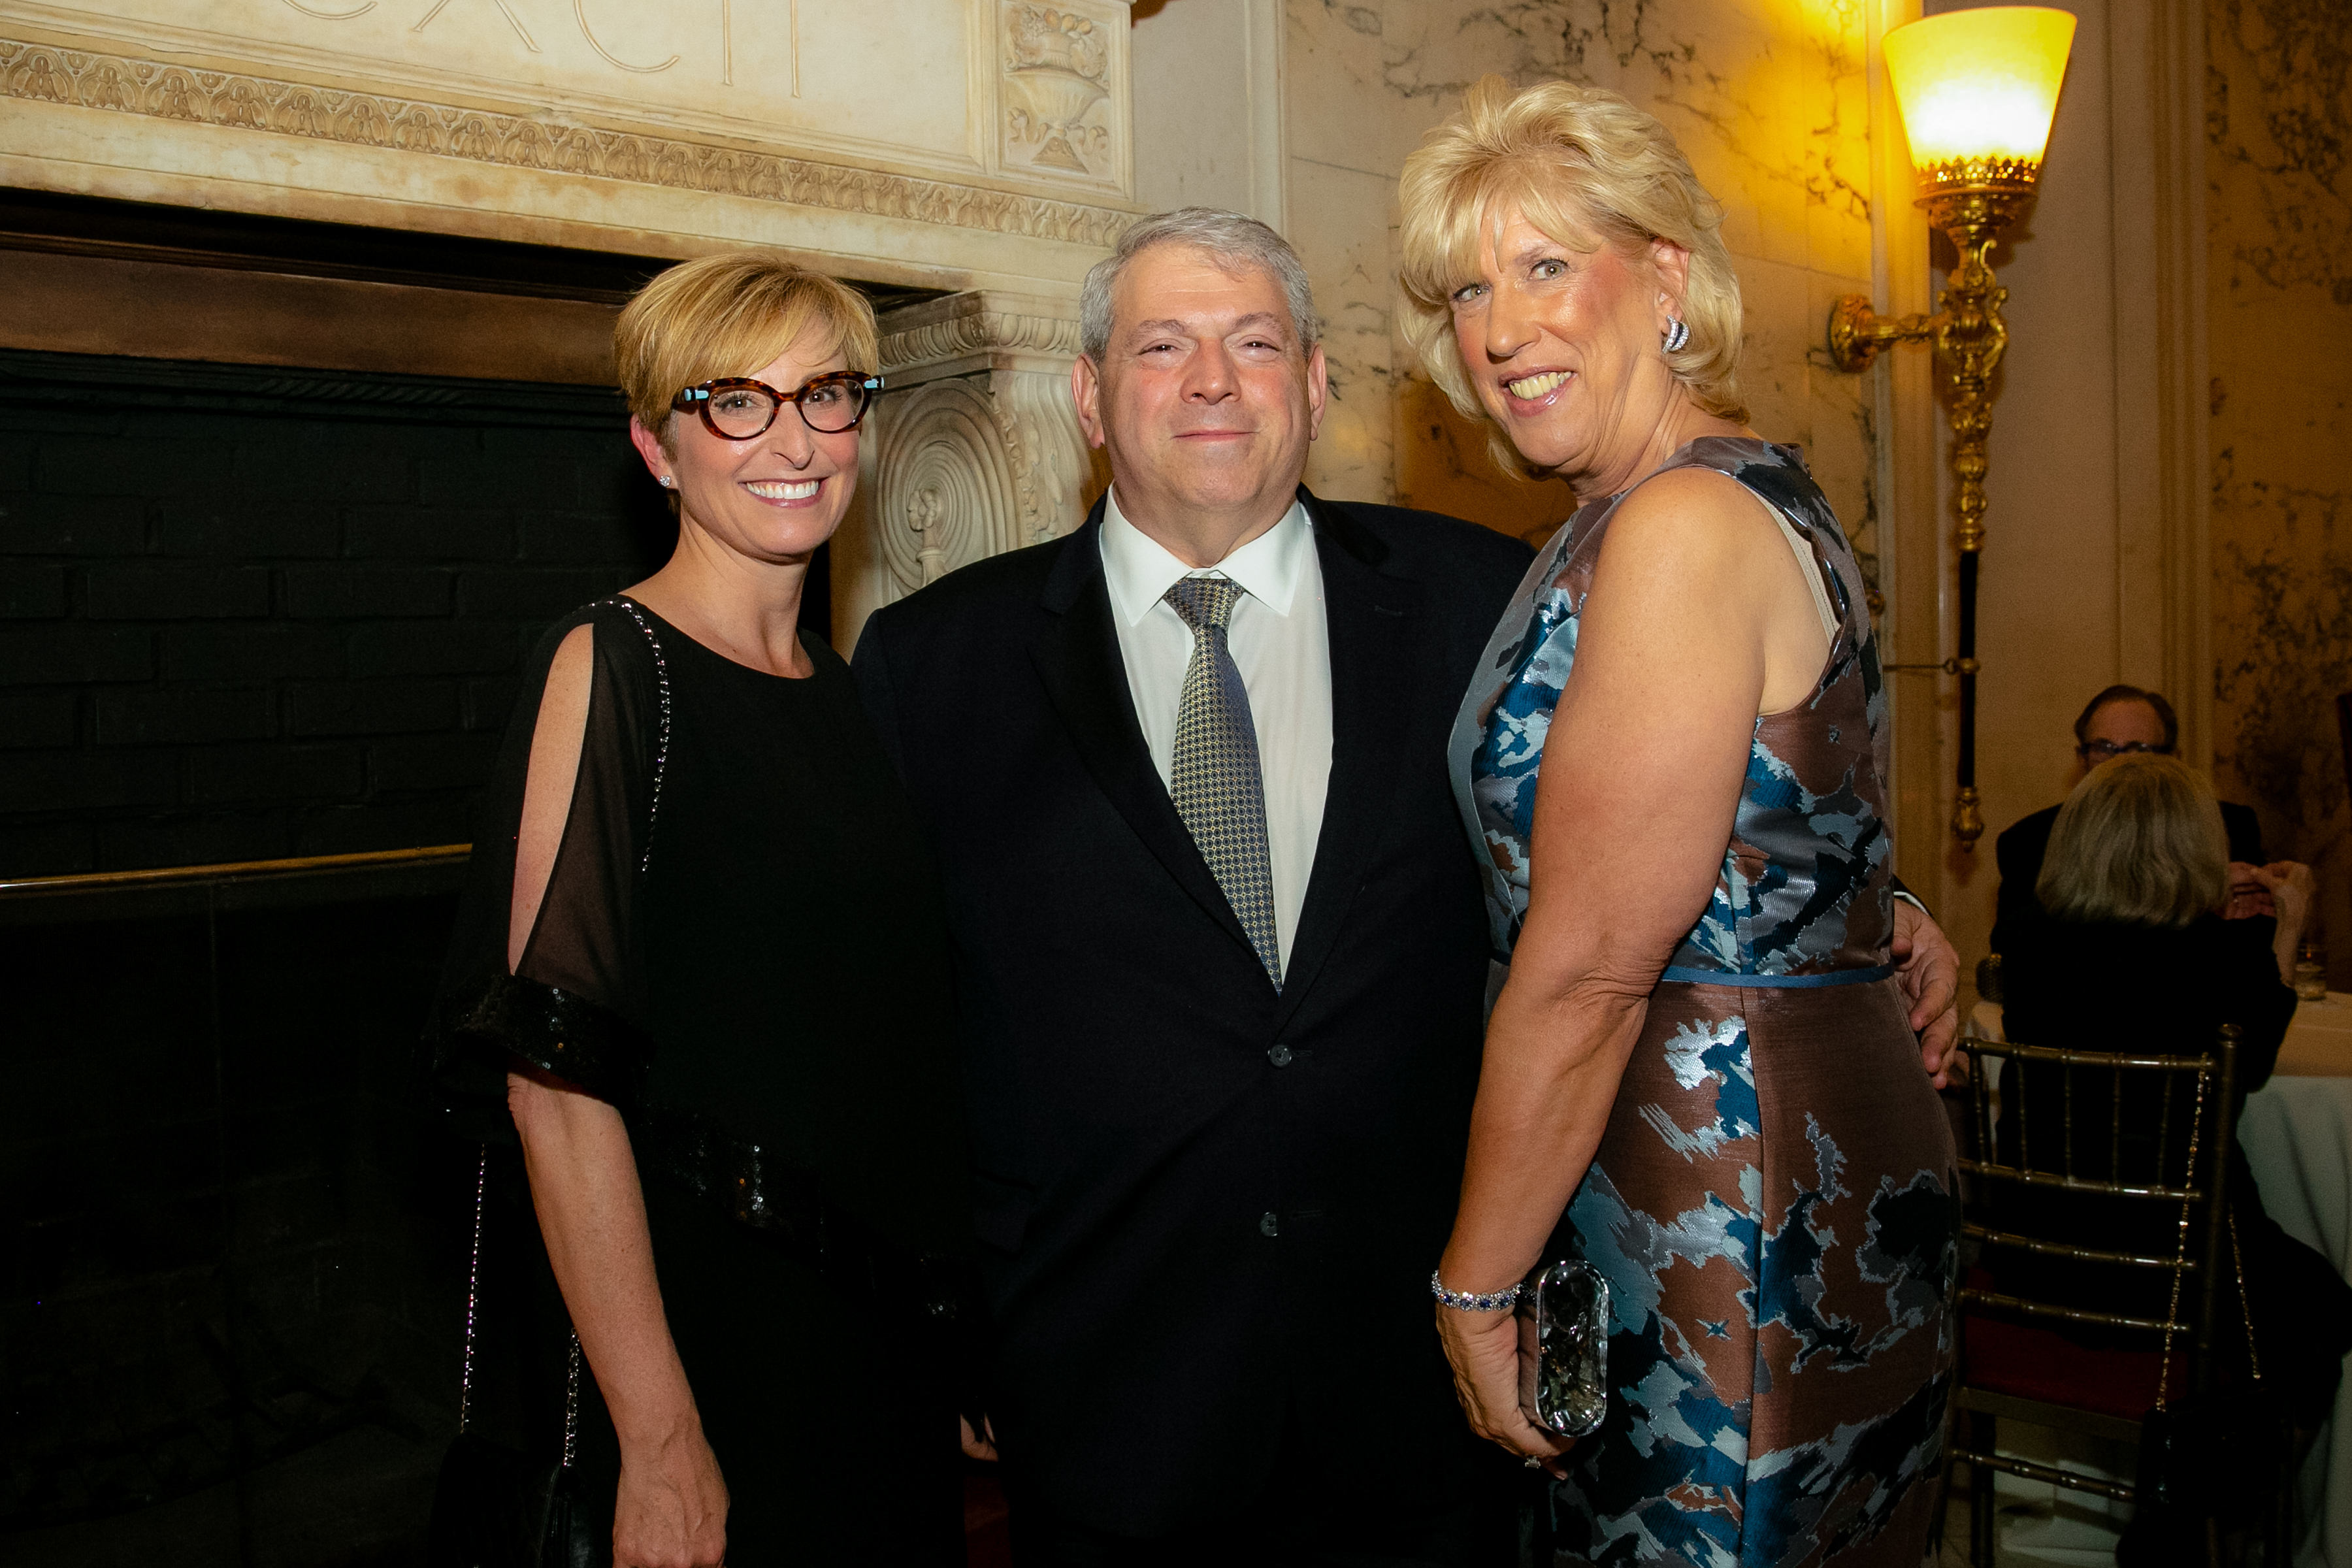 Three people standing and smiling in front of a fireplace at 2019 Gala